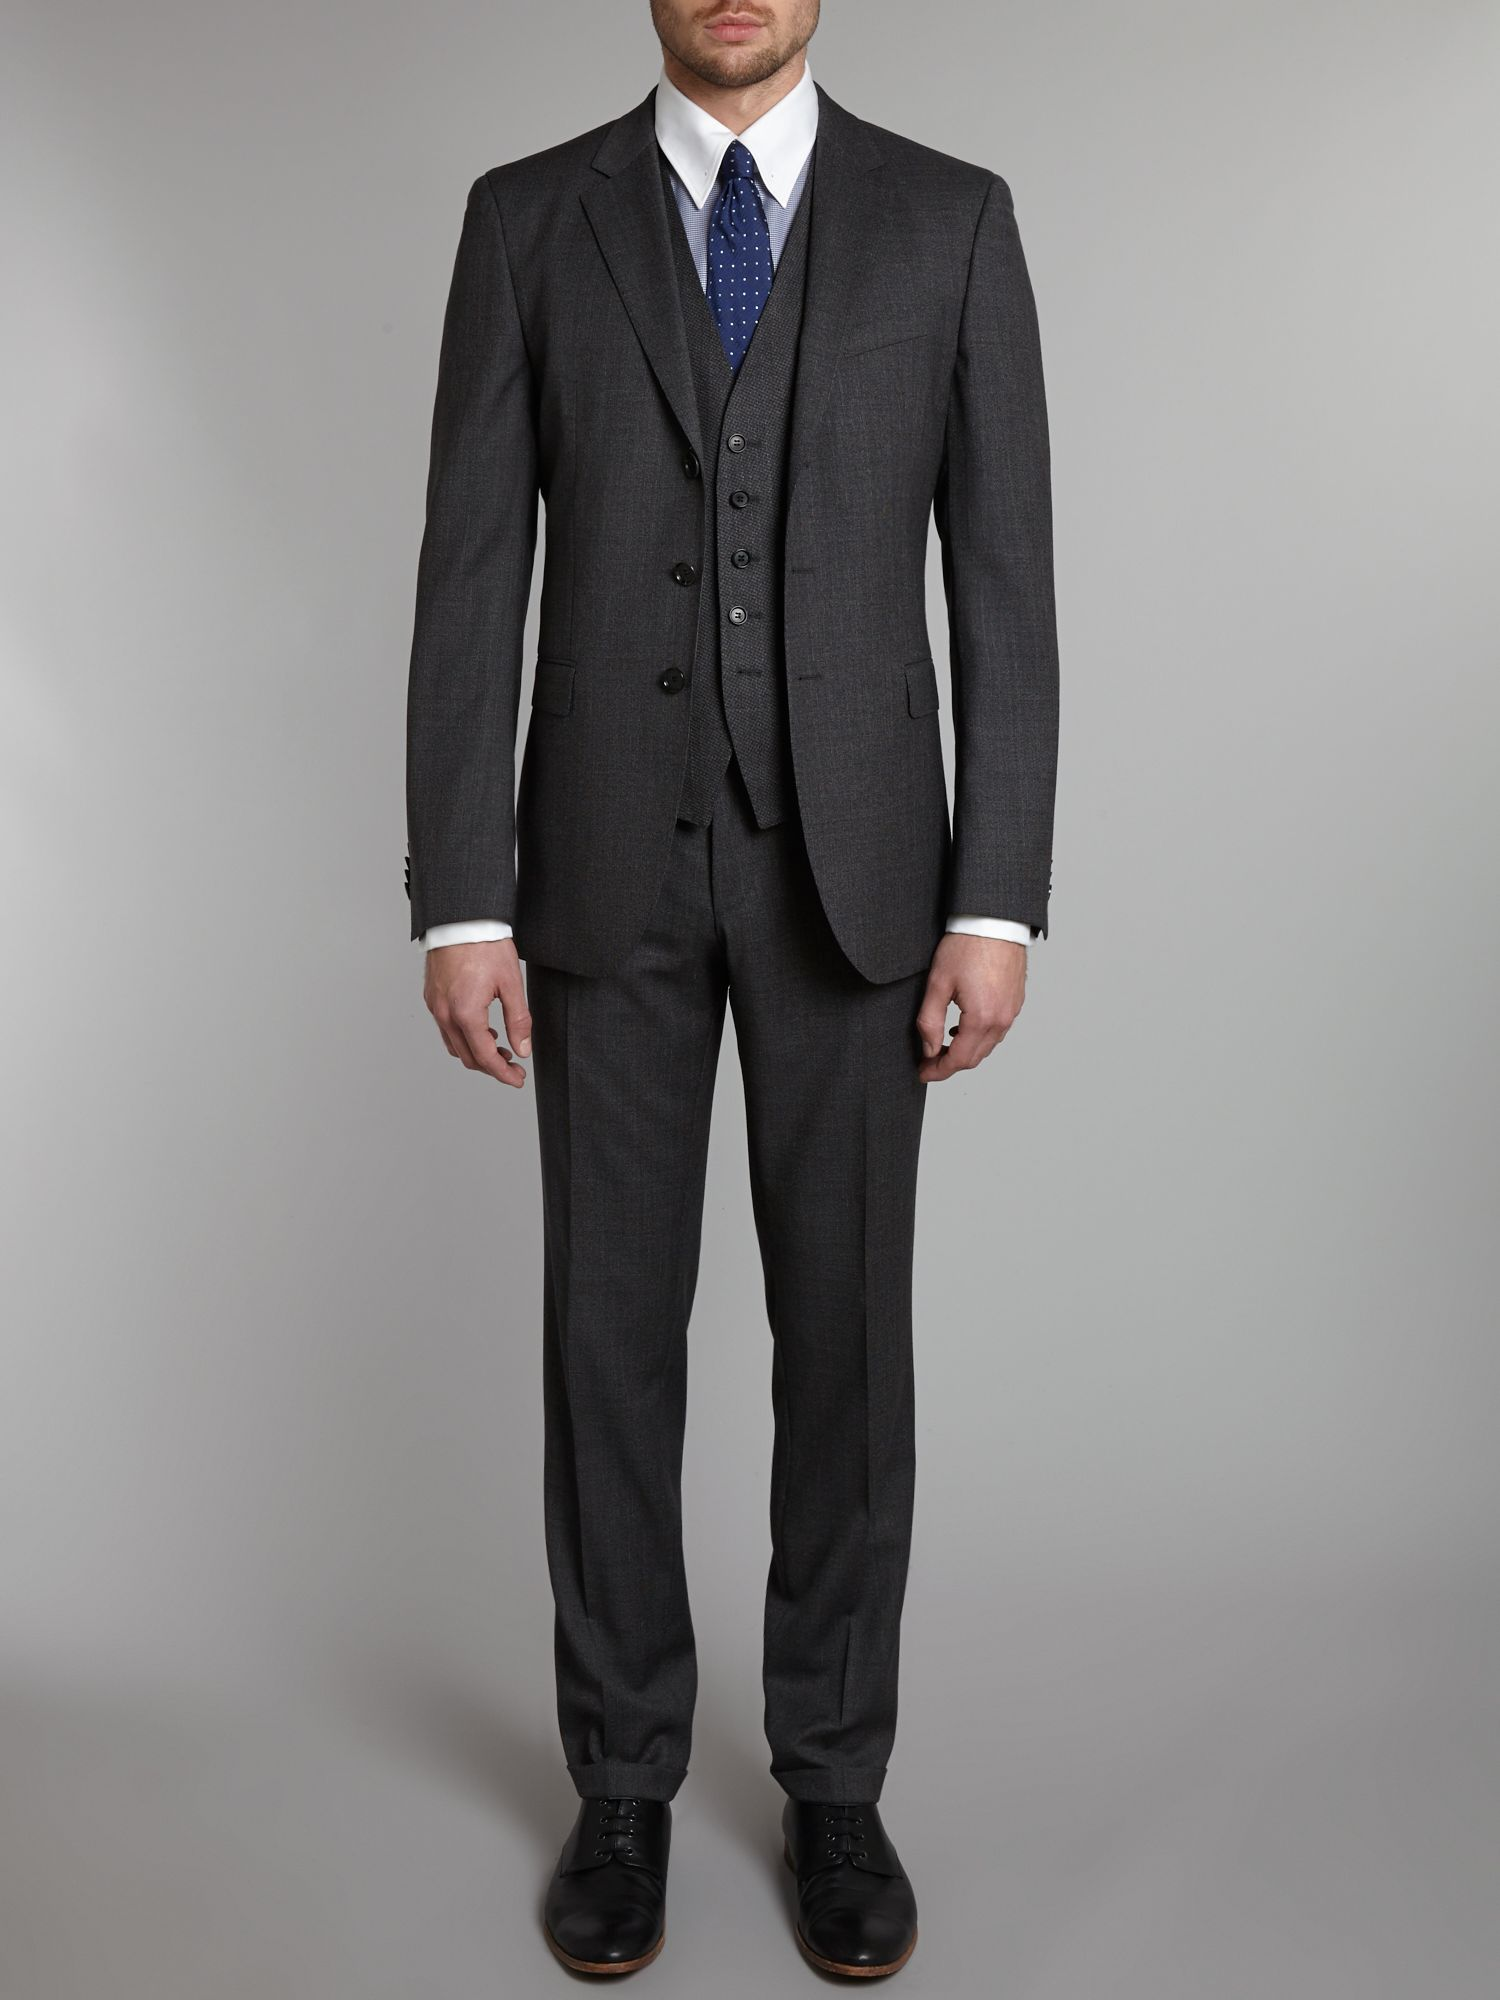 Resko Wize super slim three piece suit